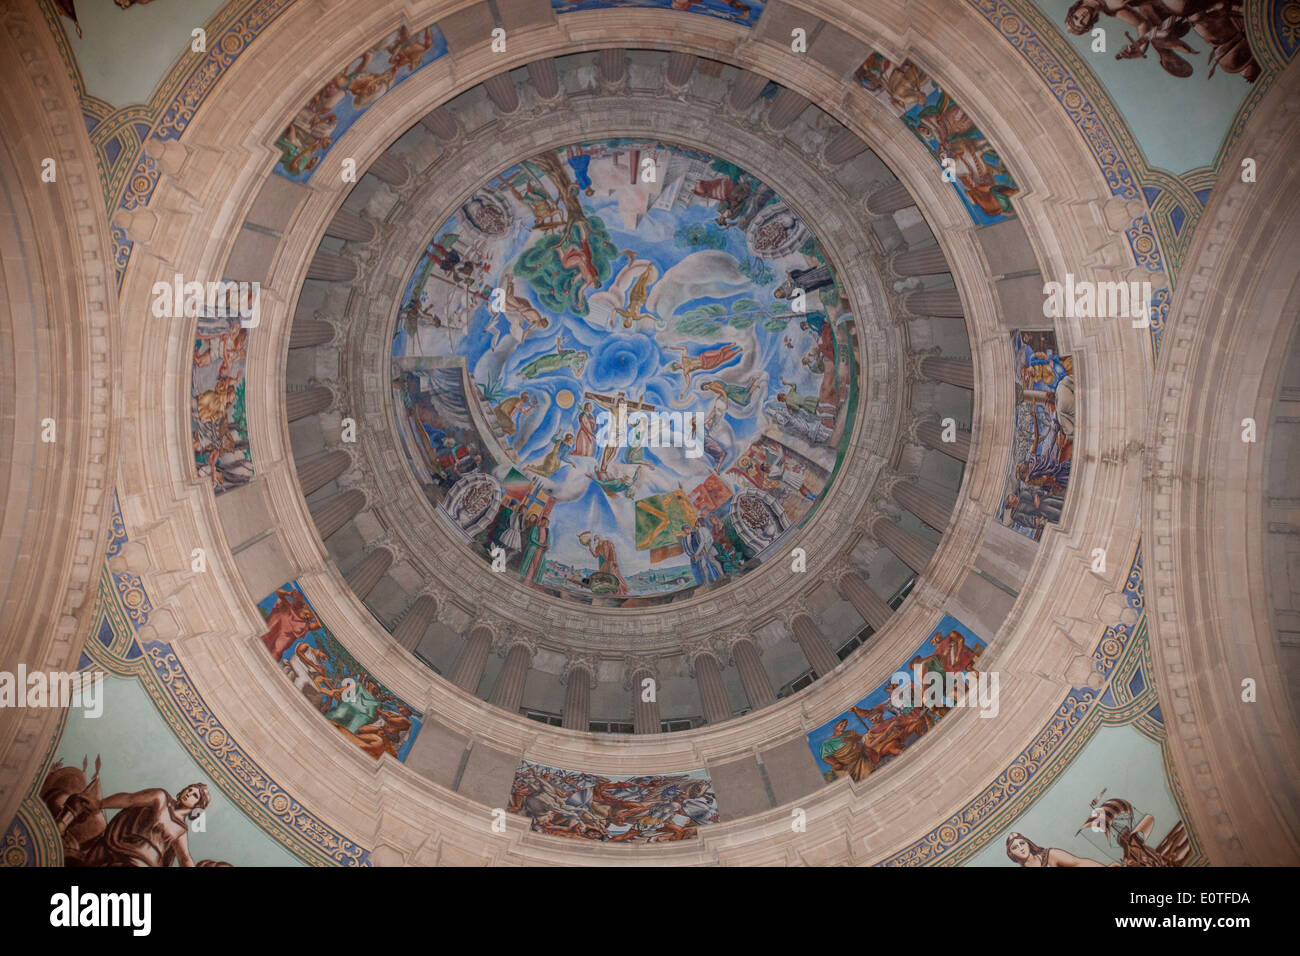 Inside of the dome at the National art museum of Catalonia  (MNAC) Barcelona. Spain - Stock Image